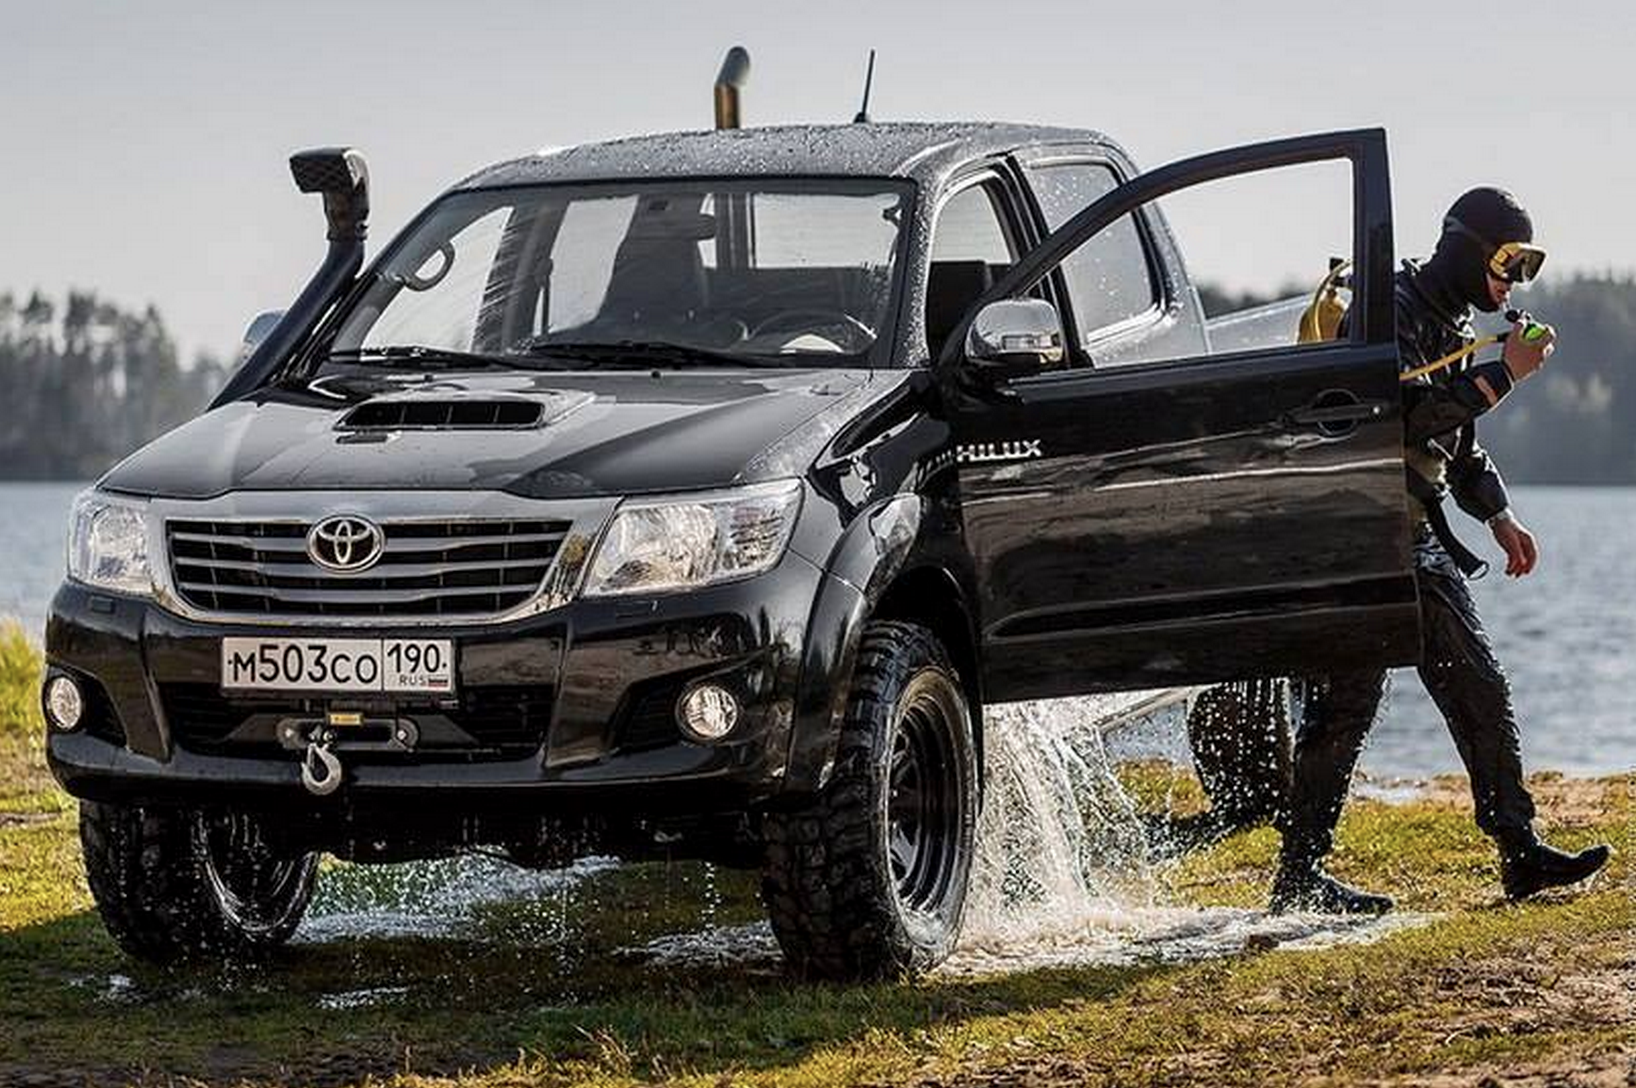 hilux toyota off road pinterest toyota toyota hilux and 4x4. Black Bedroom Furniture Sets. Home Design Ideas